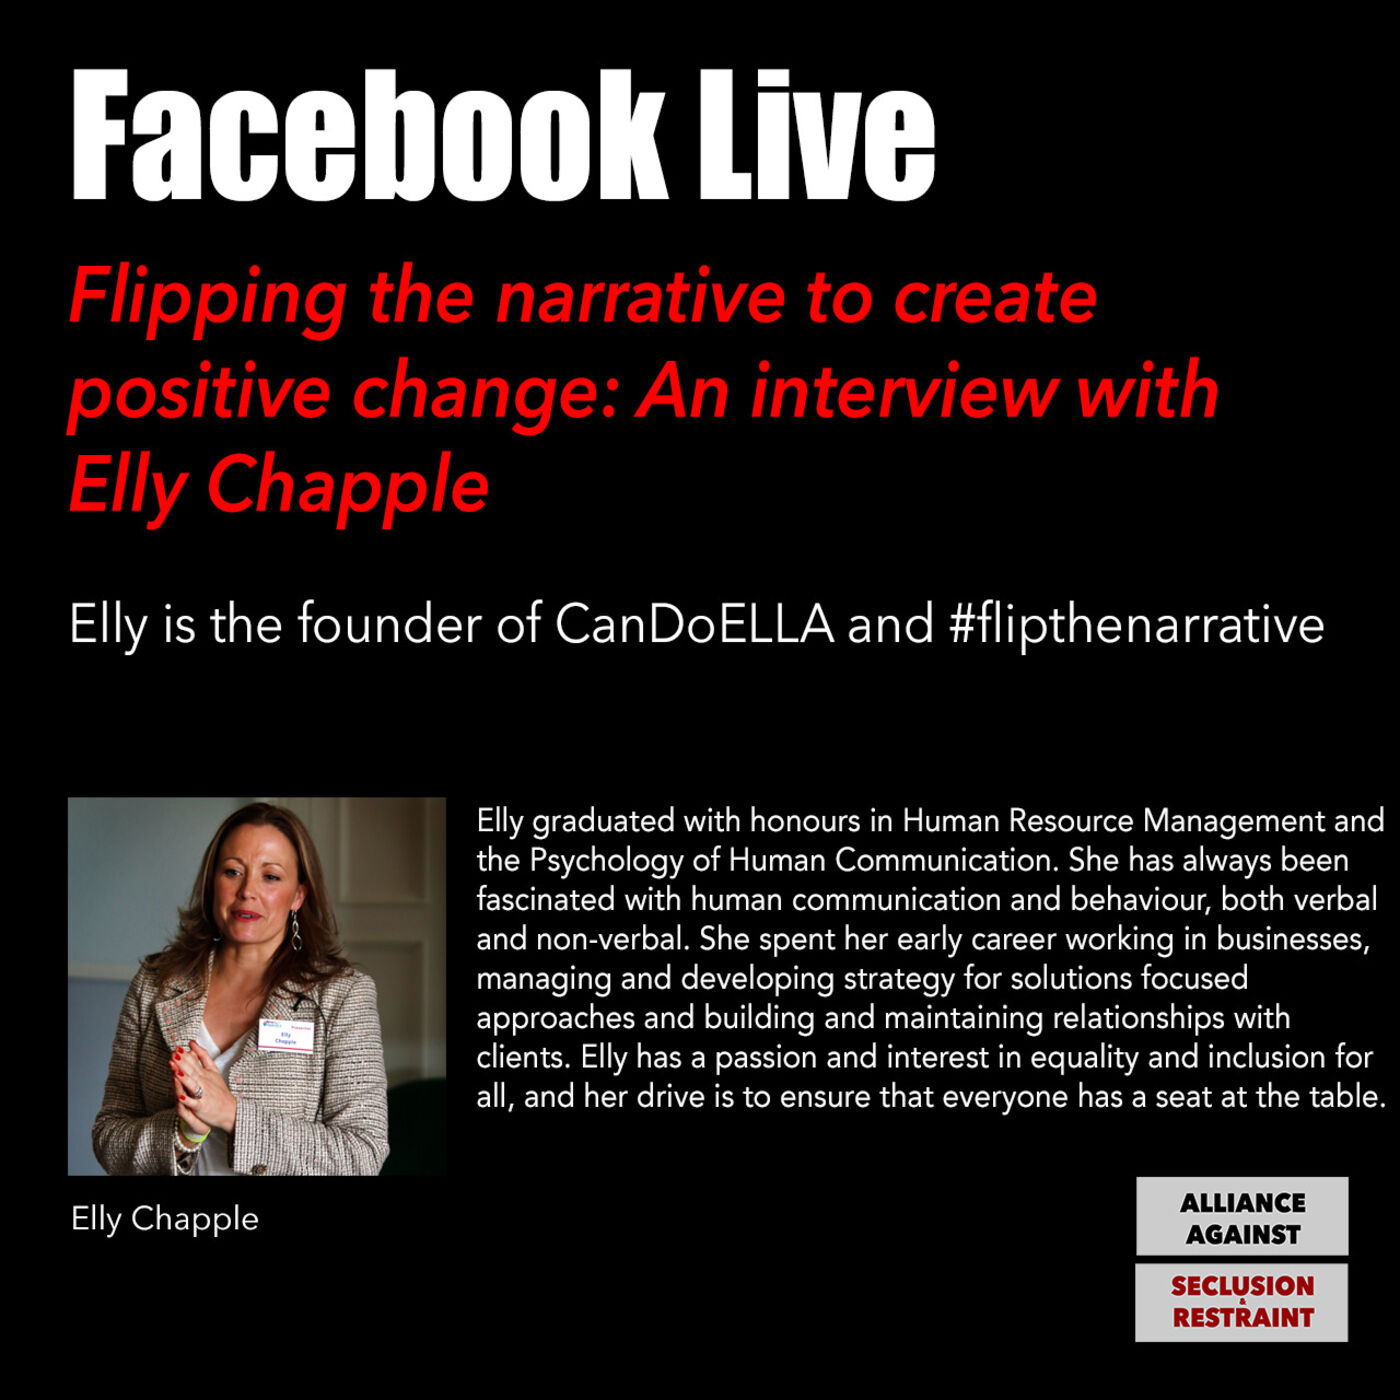 Flipping the narrative to create positive change: An interview with Elly Chapple